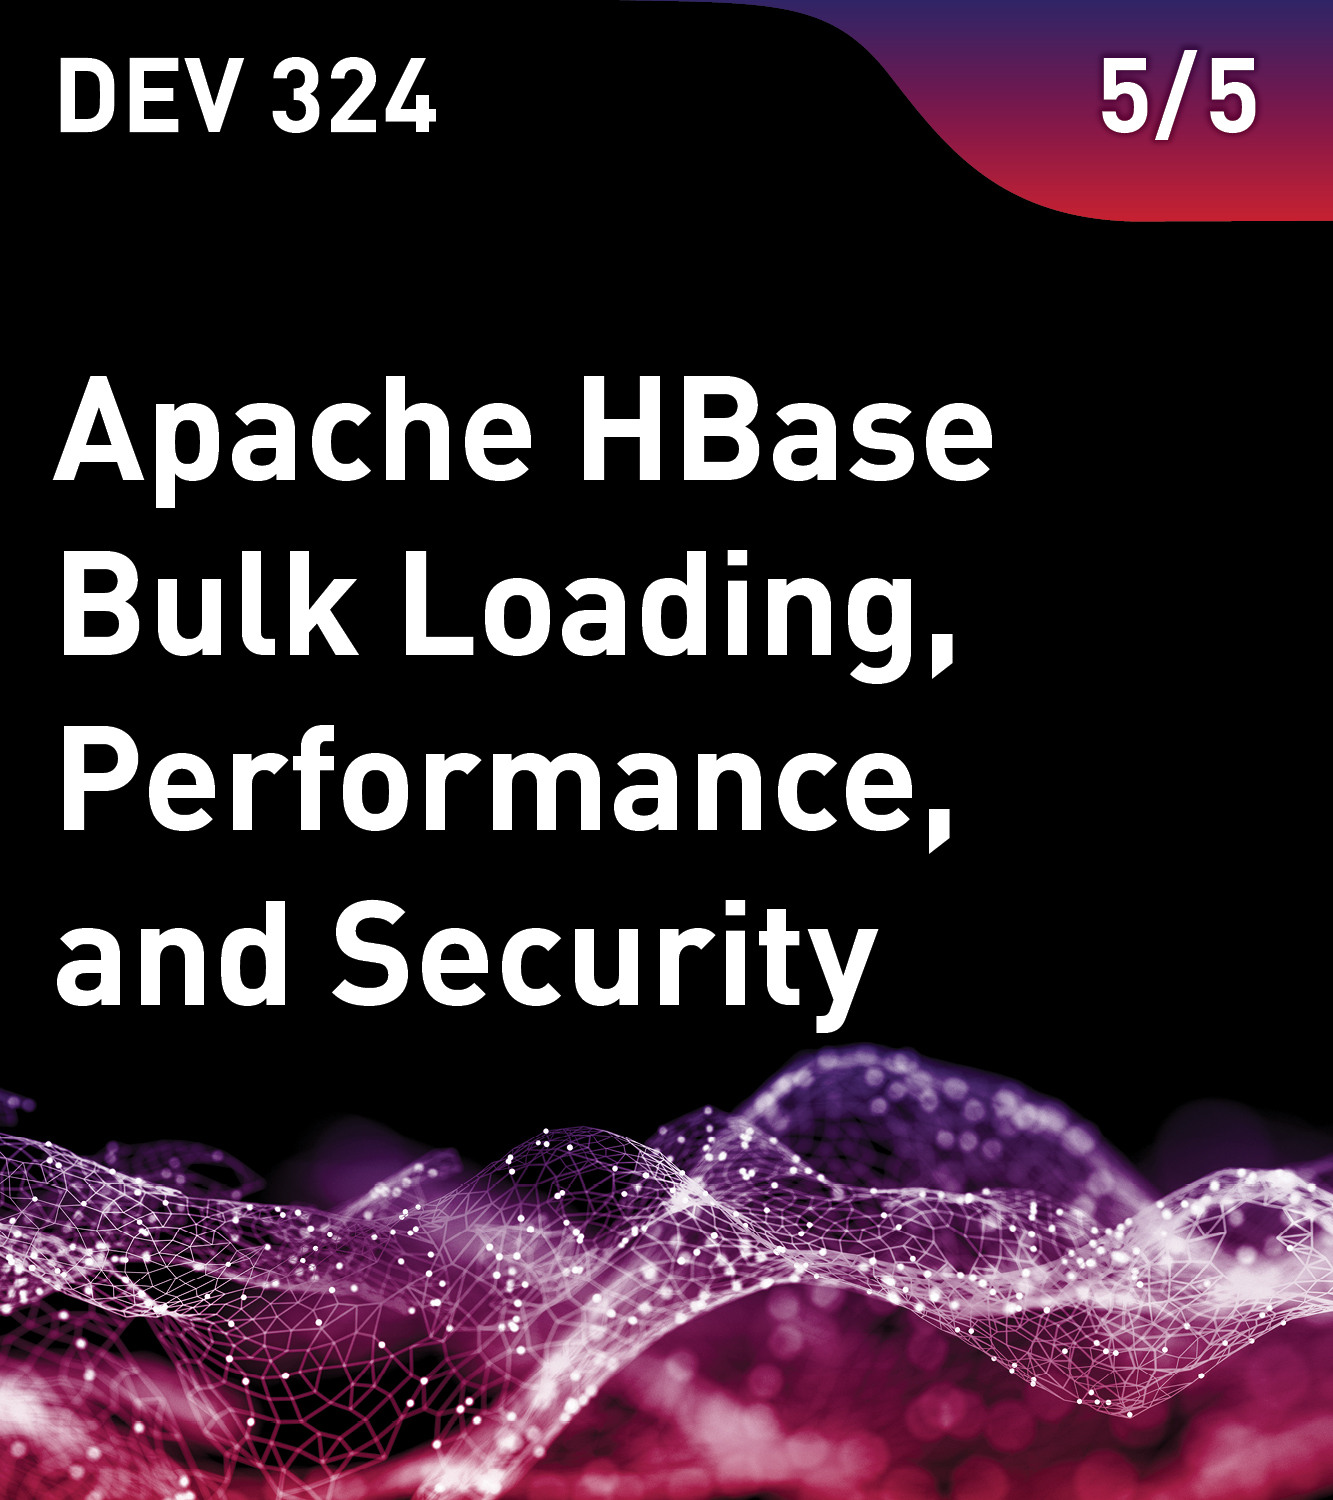 DEV 324 - Apache HBase Bulk Loading, Performance, and Security